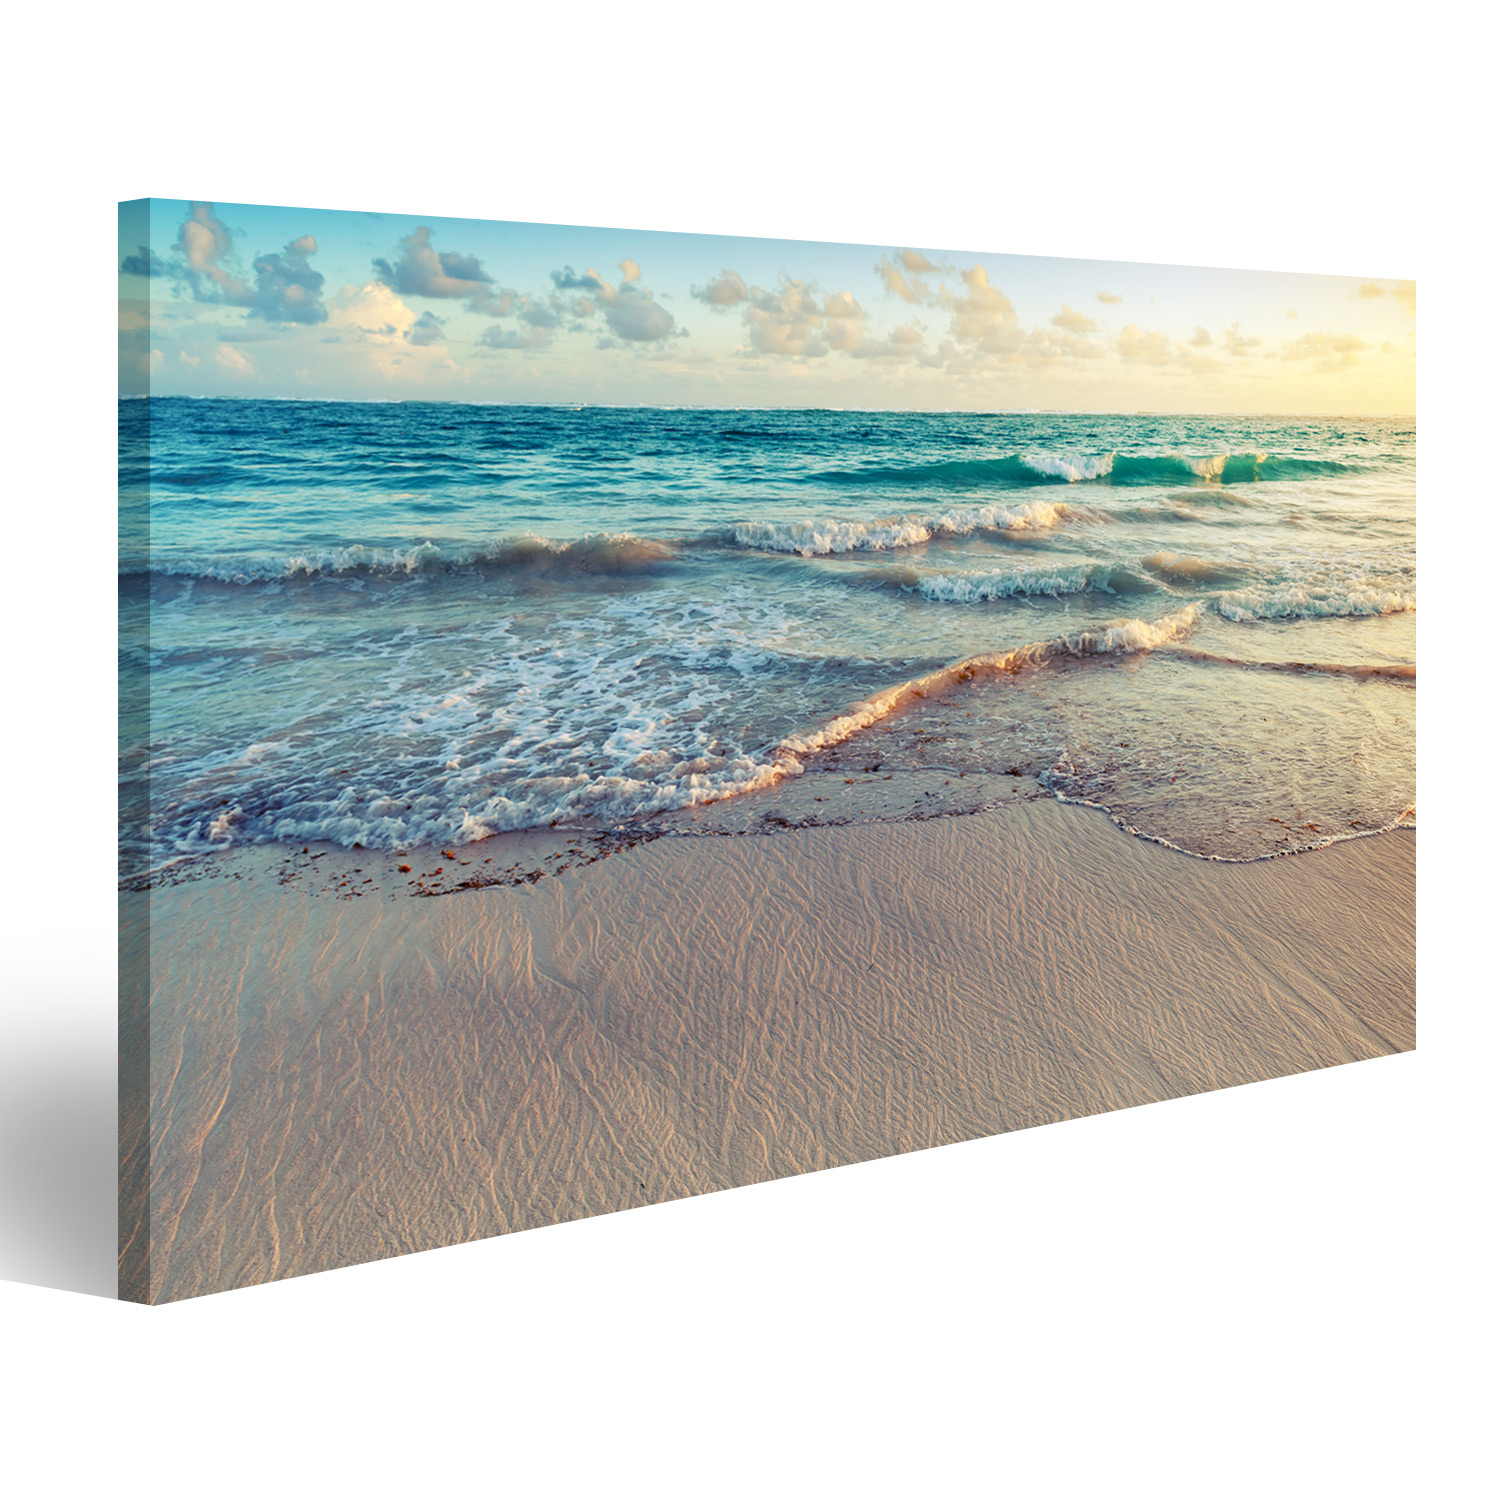 strand meer sand bild auf leinwand poster azh 1k ebay. Black Bedroom Furniture Sets. Home Design Ideas